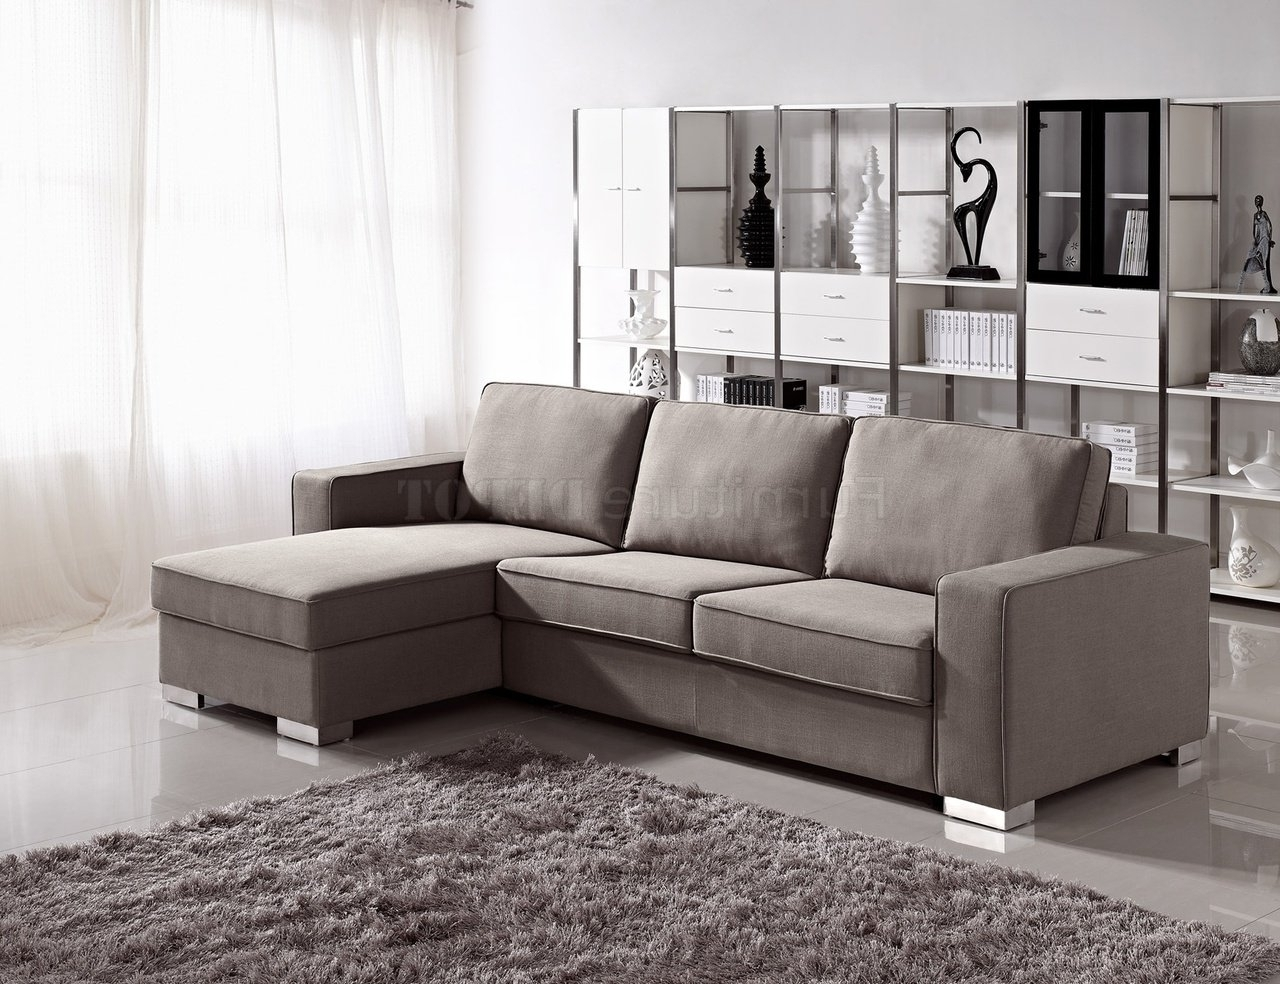 Most Popular Convertible Sectional Sofas Pertaining To Sectional Sofa Design: Adorable Convertible Sectional Sofa Bed (View 15 of 20)